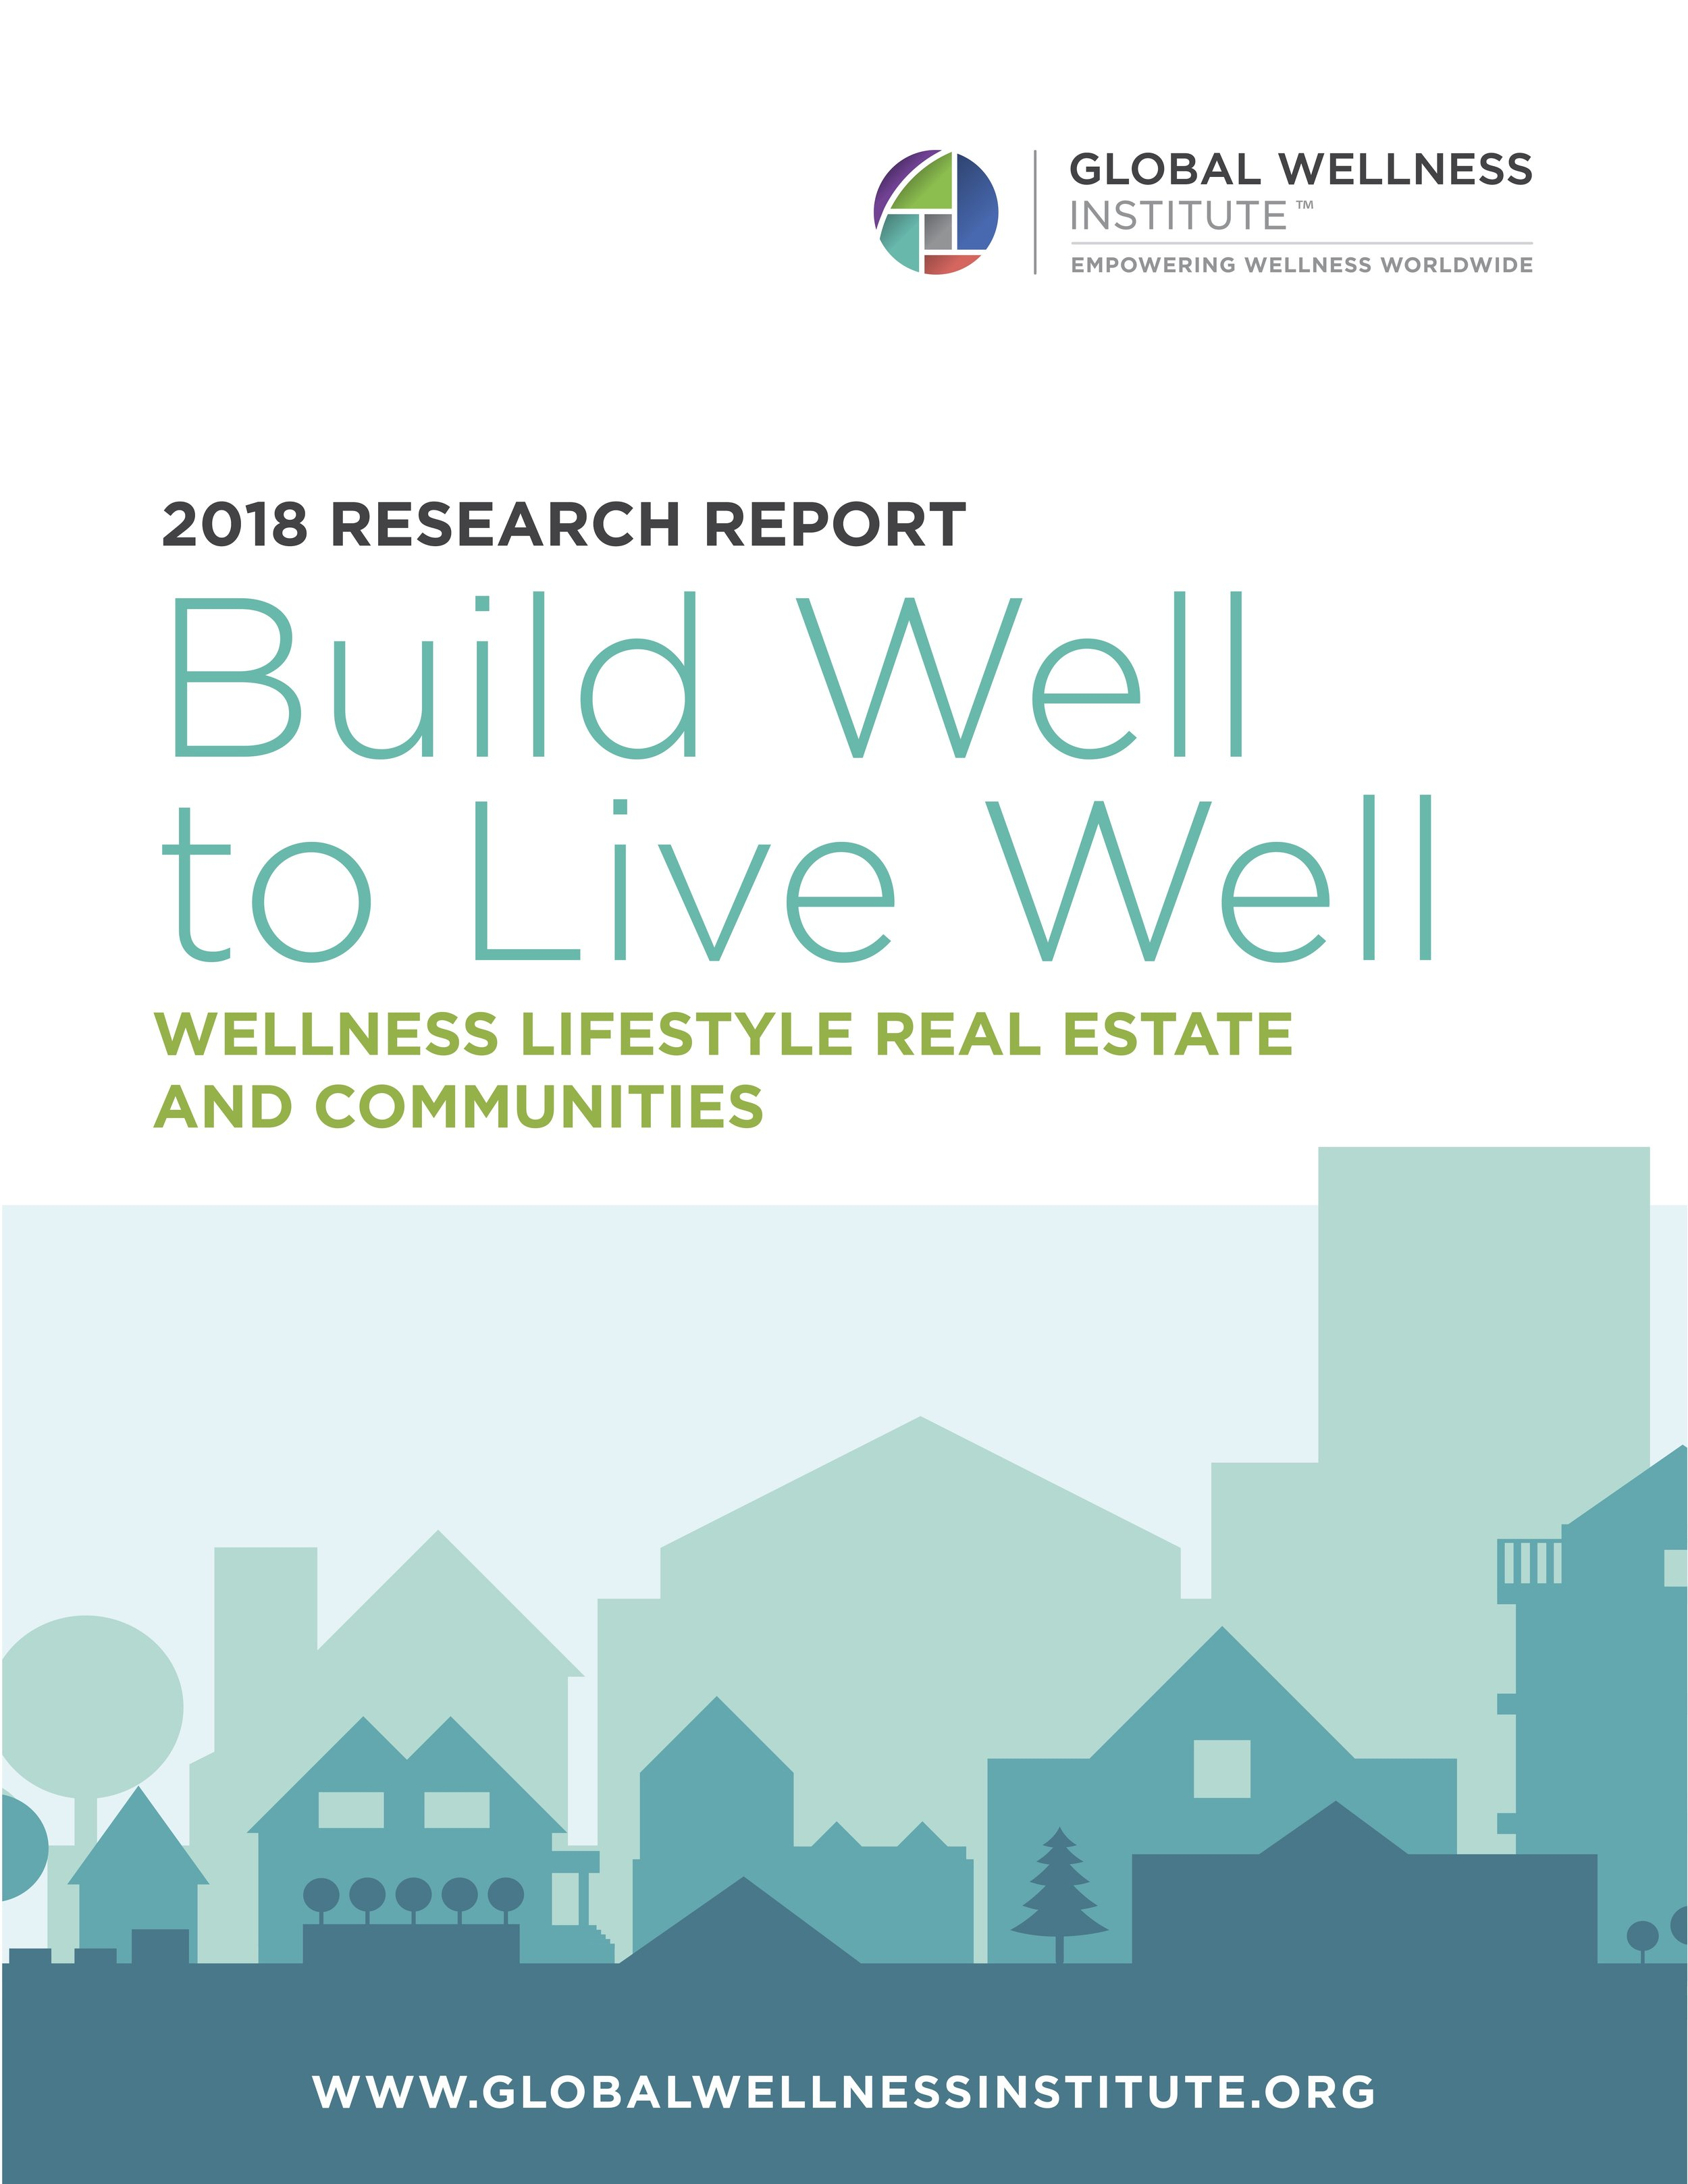 2018Research_BuildWelltoLiveWell_v9_1818_FINAL_LORES 1 copy.jpg